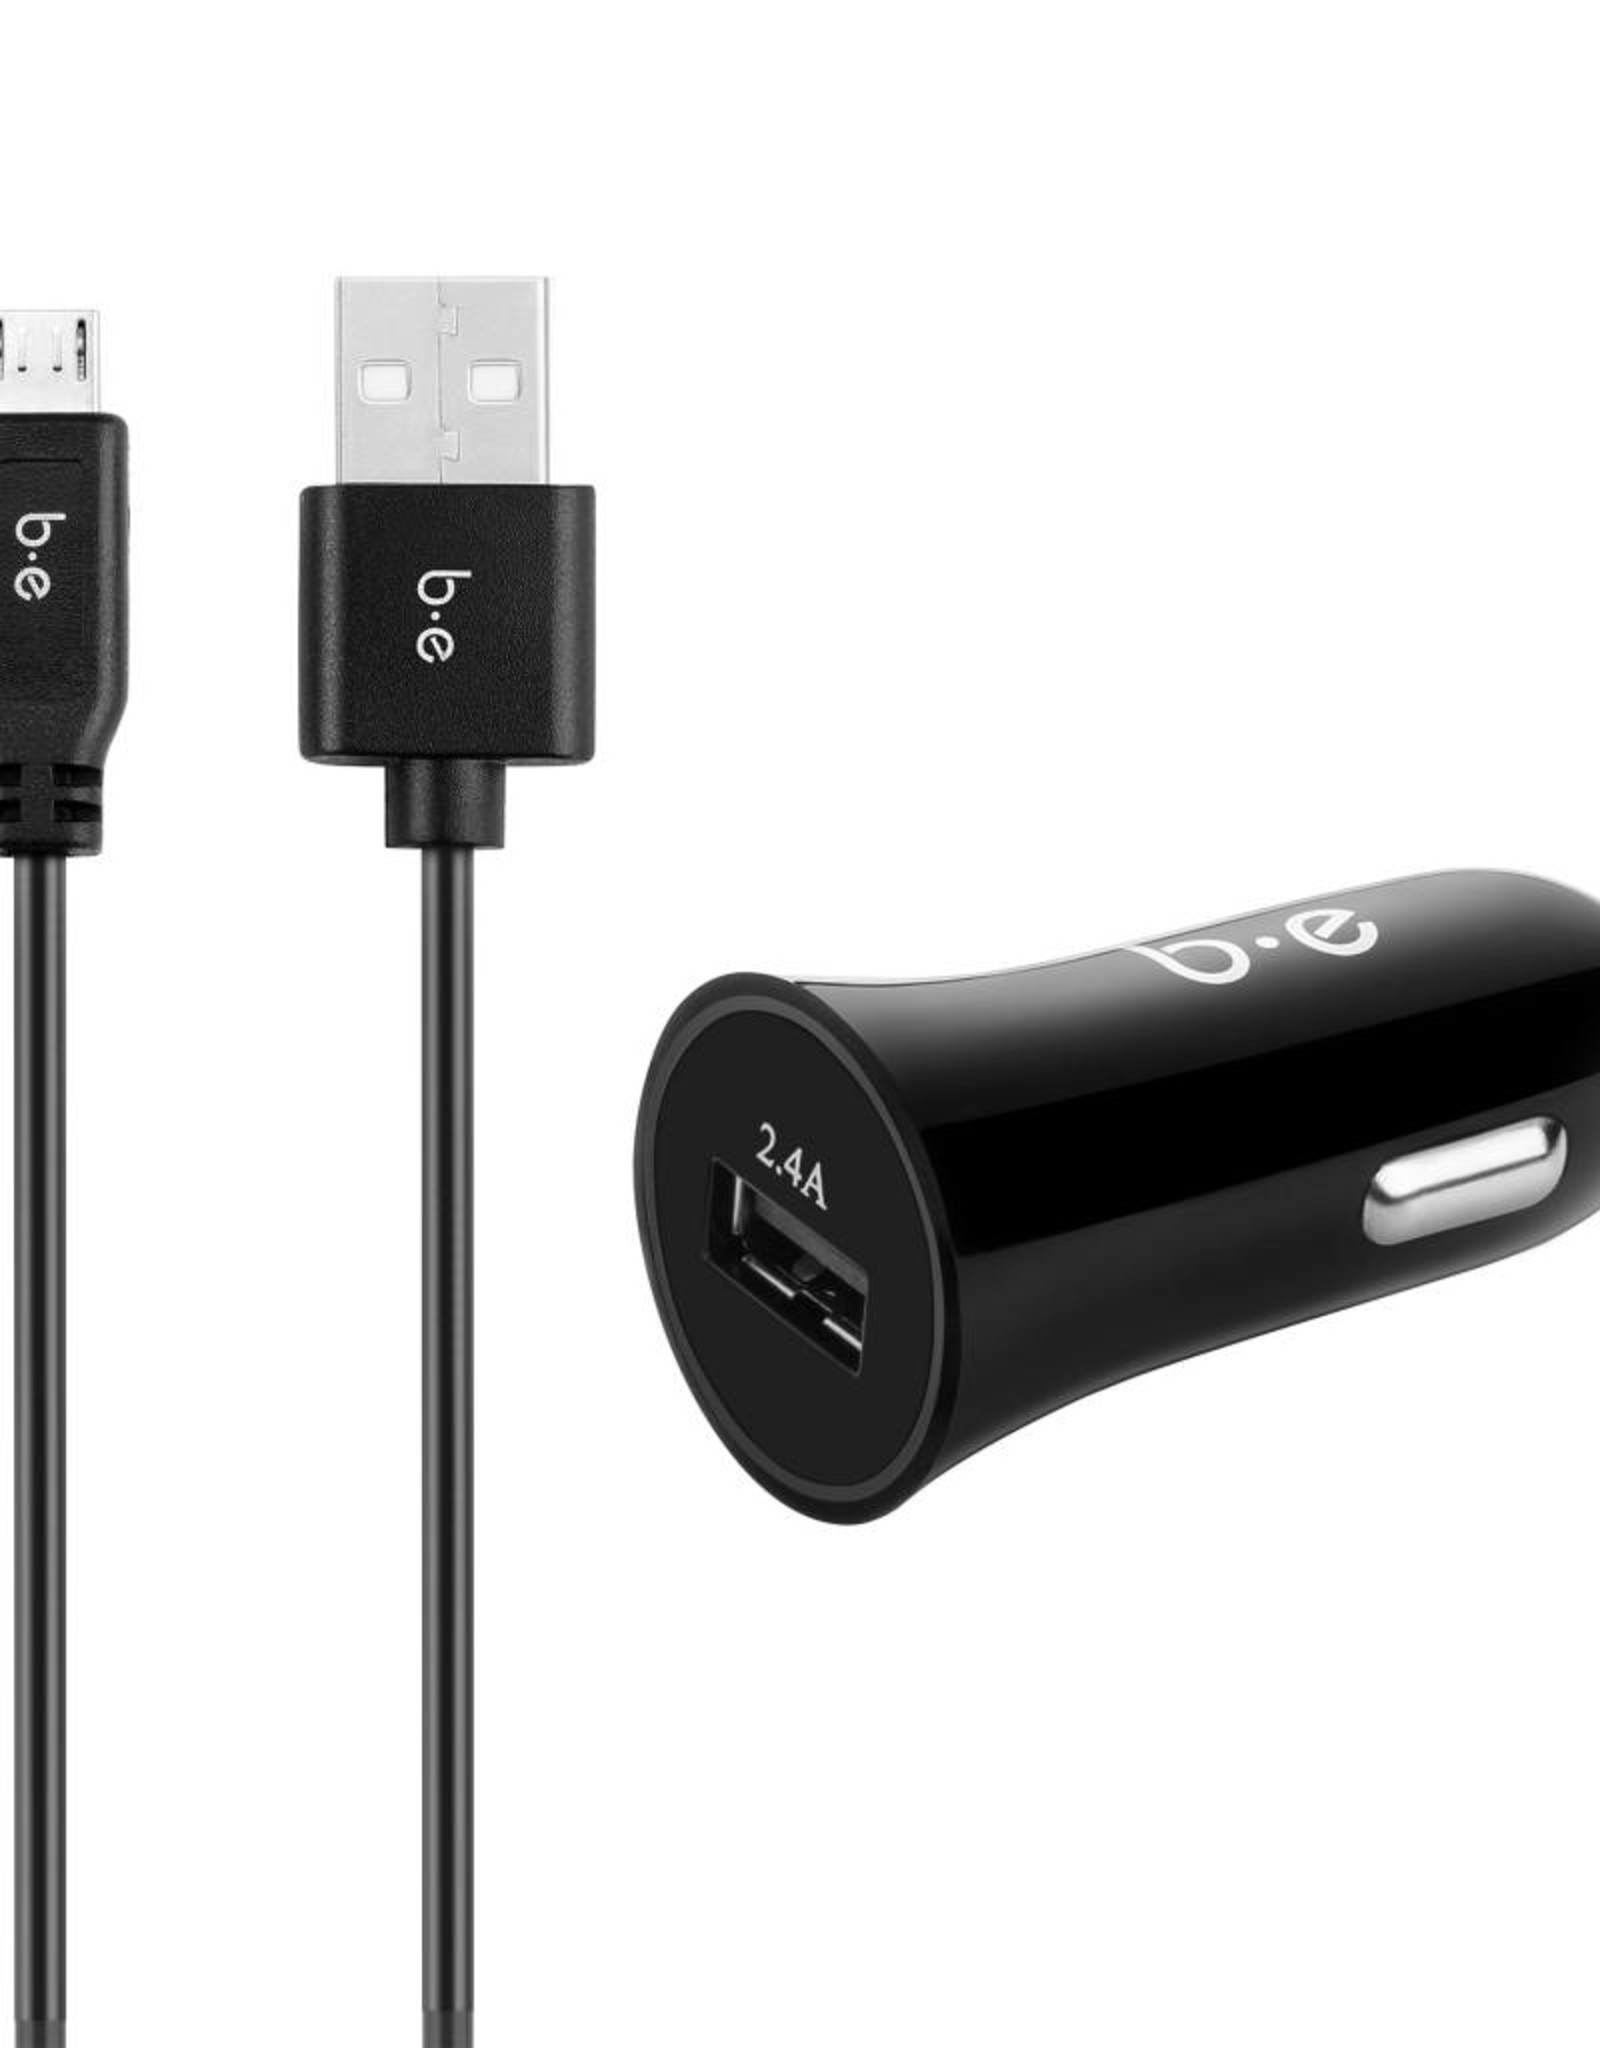 Blu Element Blu Element | Car Charger 2.4A w/Micro USB Cable Black | 110-3431